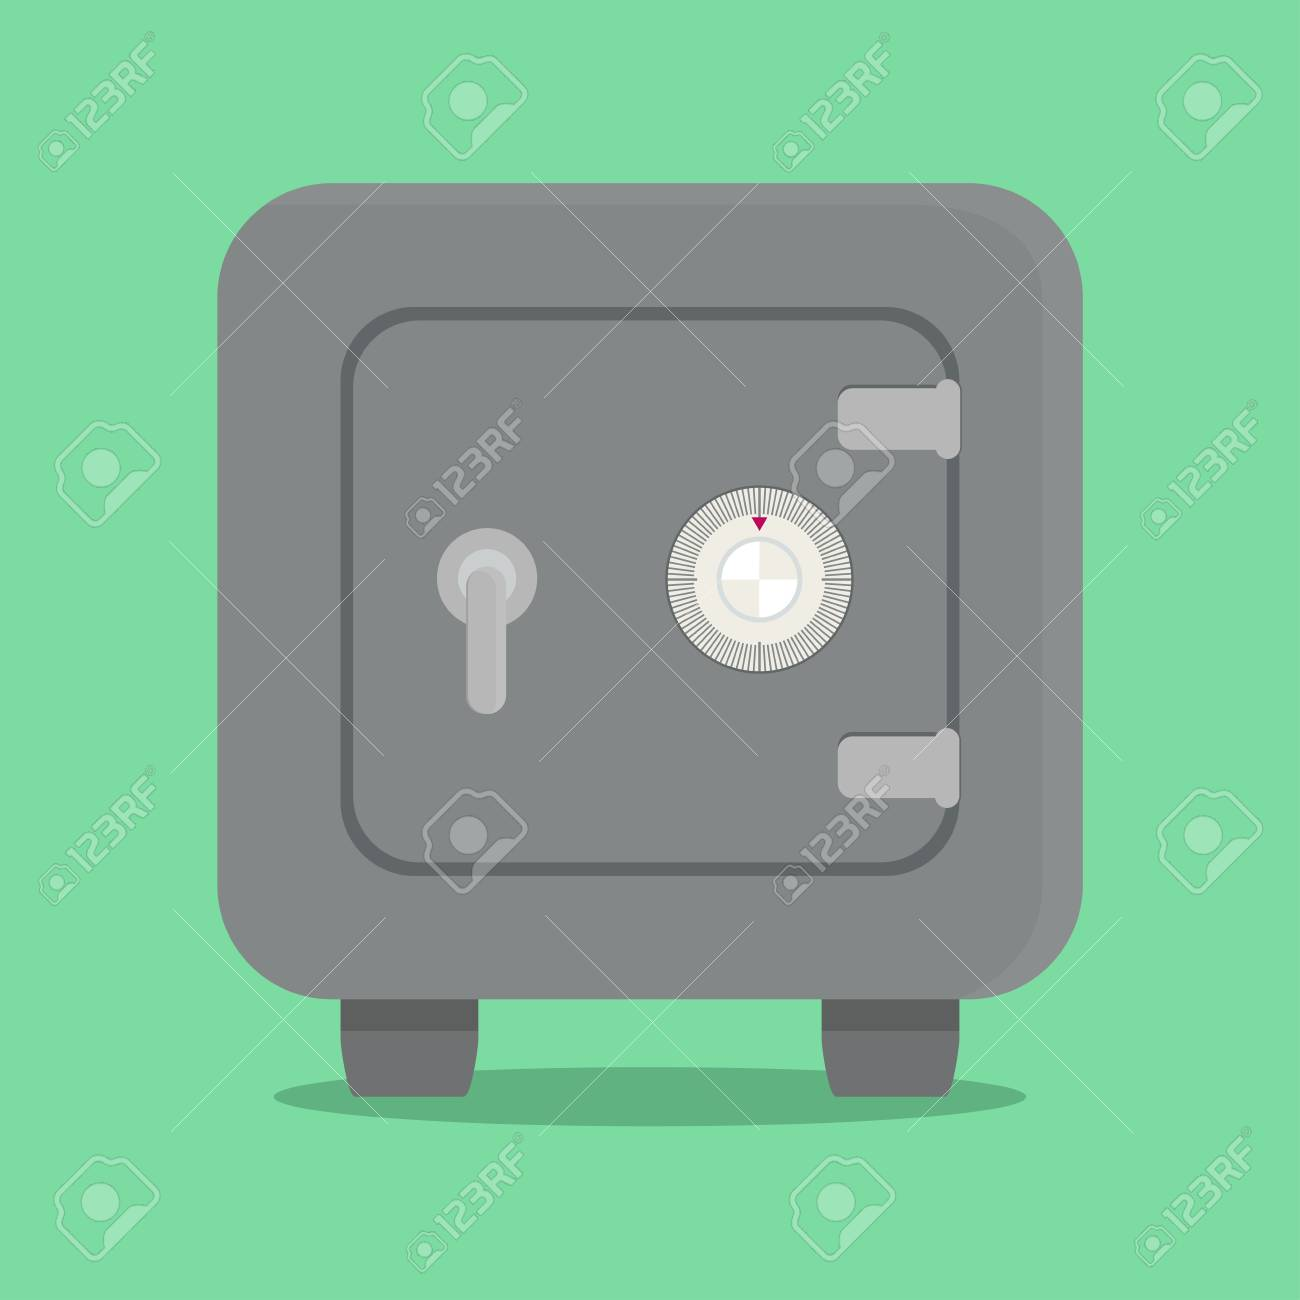 Metal Safe With Combination Lock Vector Illustrations Royalty Free Diagram Stock 69918863